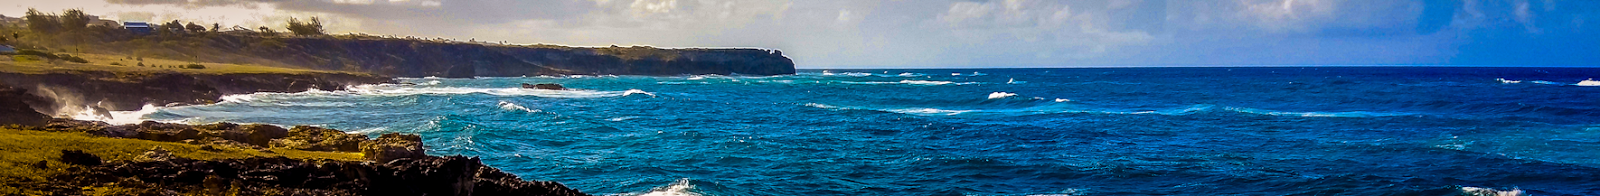 Bim Rock by Jsf-1. in Barbados